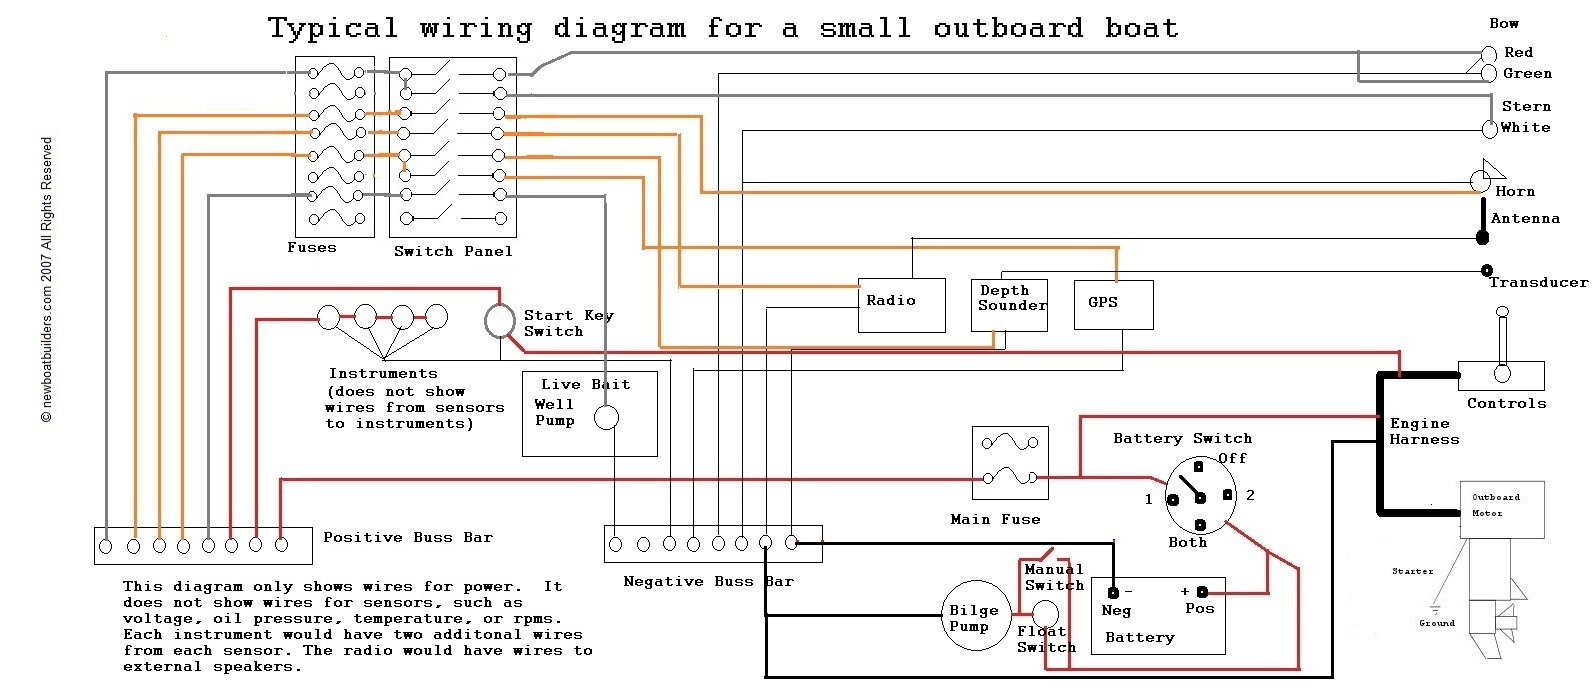 Wiring Codes For Boats - Data Wiring Diagrams